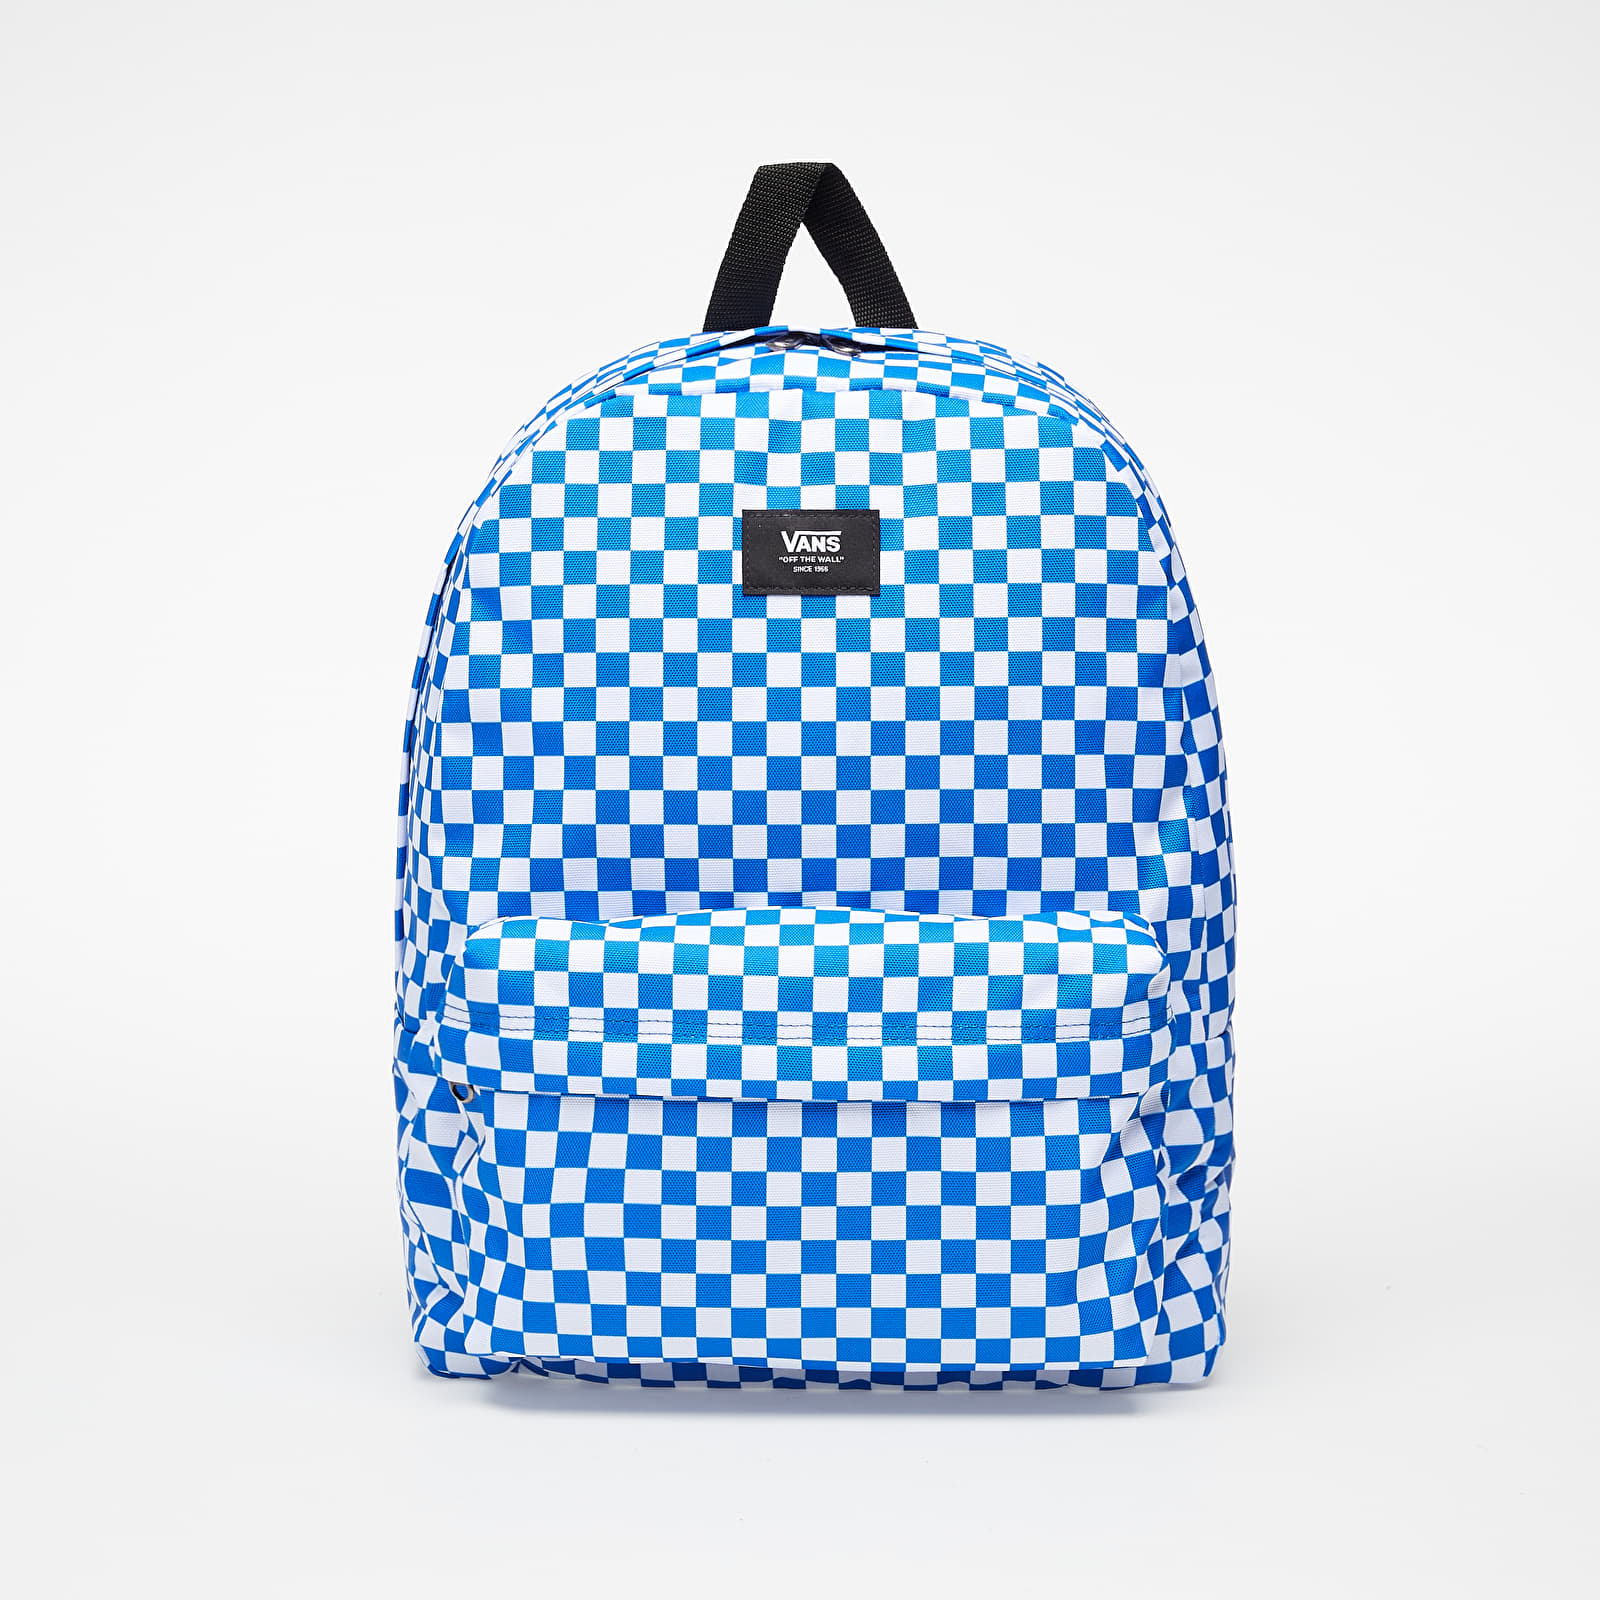 Sacs à dos Vans Old Skool III Backpack Victoria Blue C